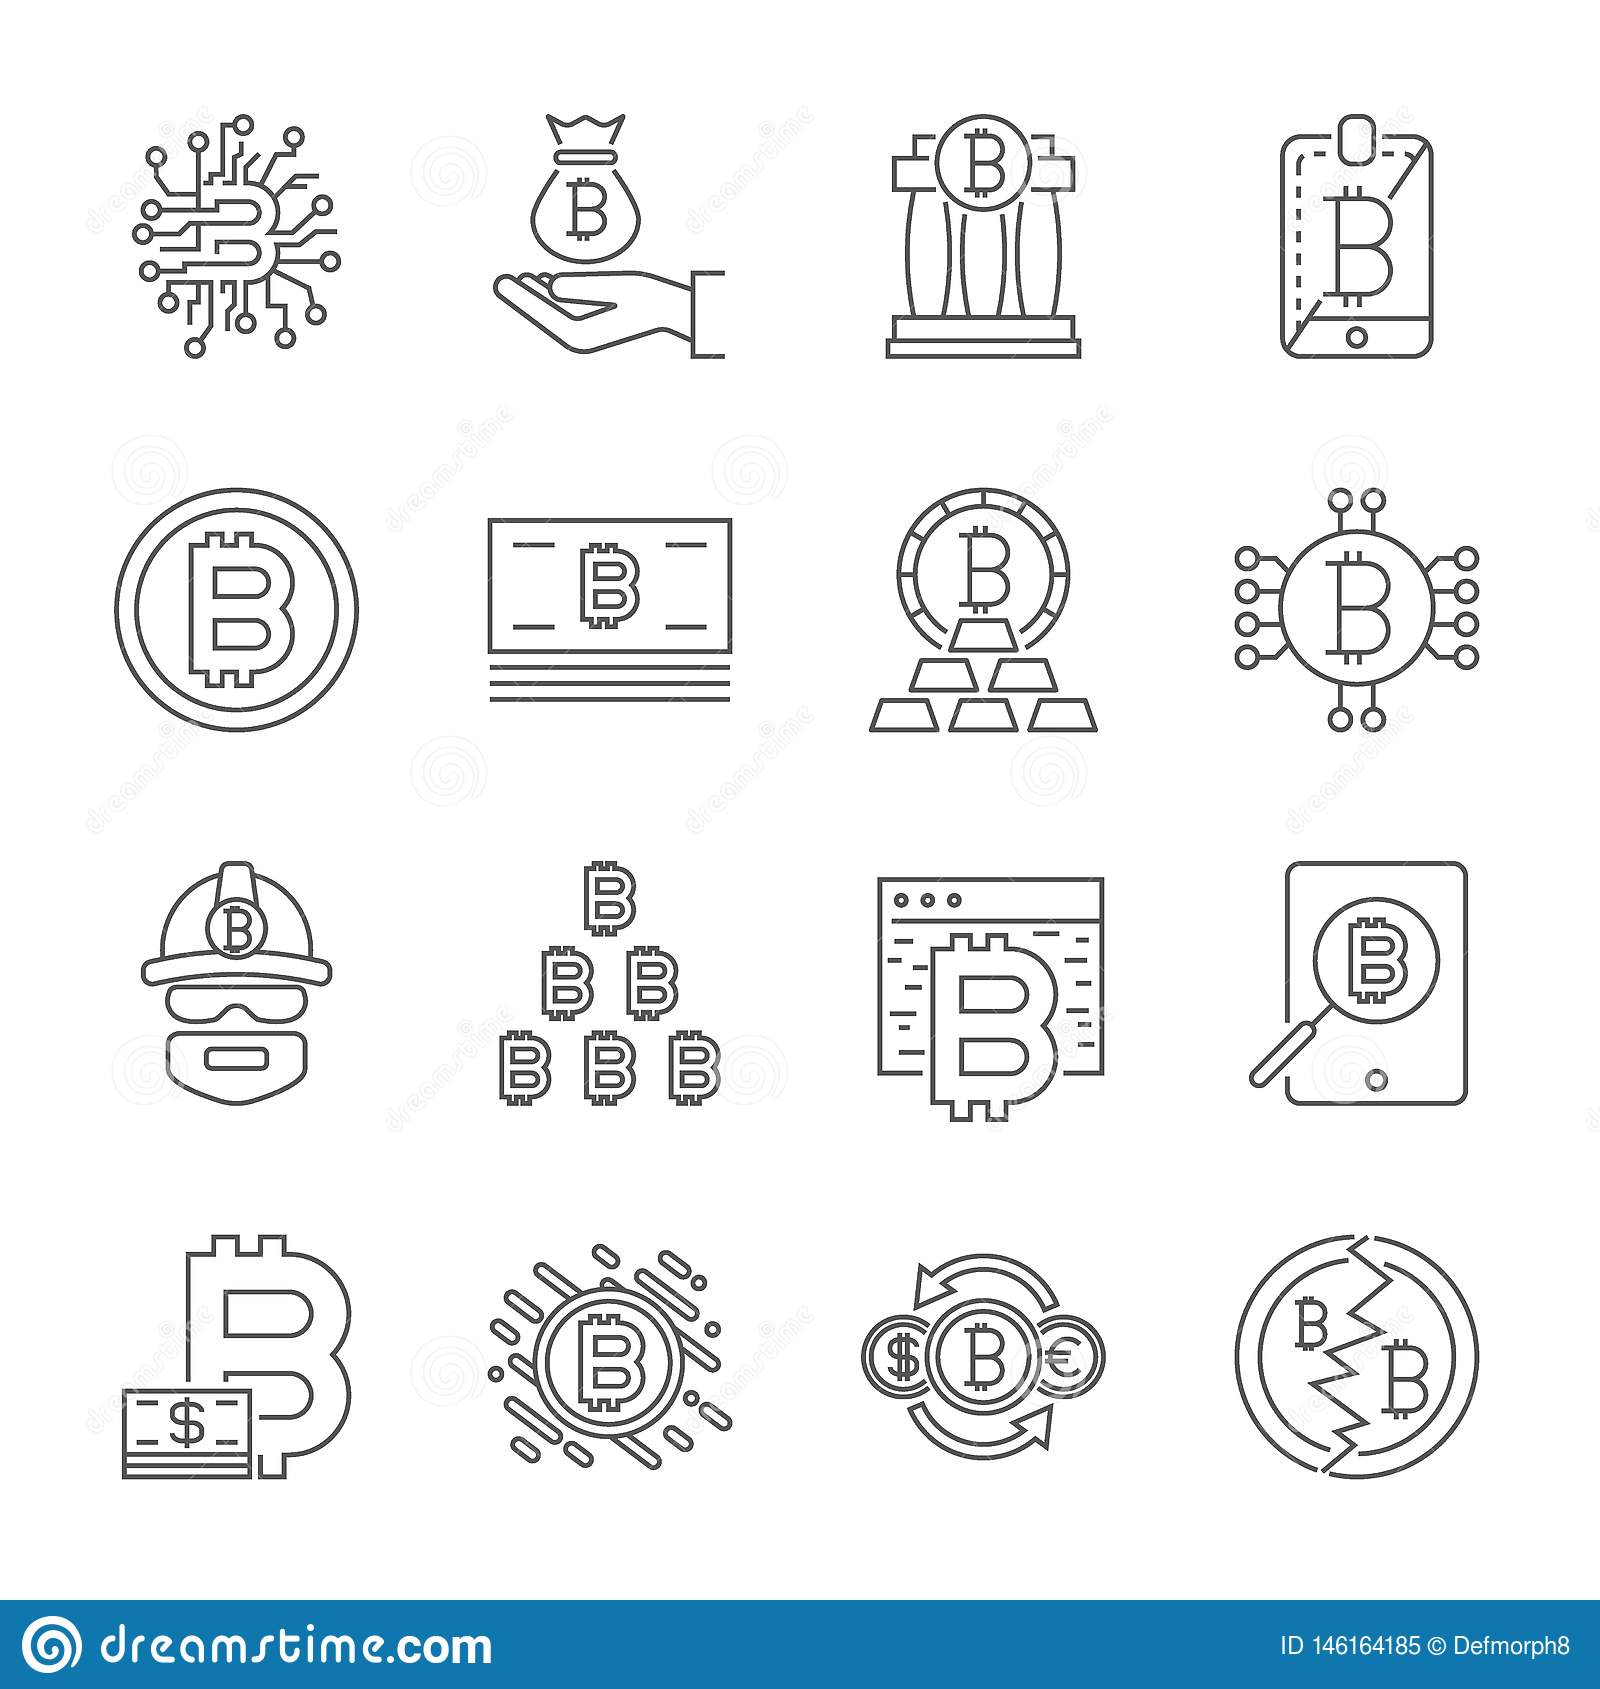 Cryptocurrency Line Icons Set. Vector Collection of Thin Outline Bitcoin Finance Symbols. Editable Stroke